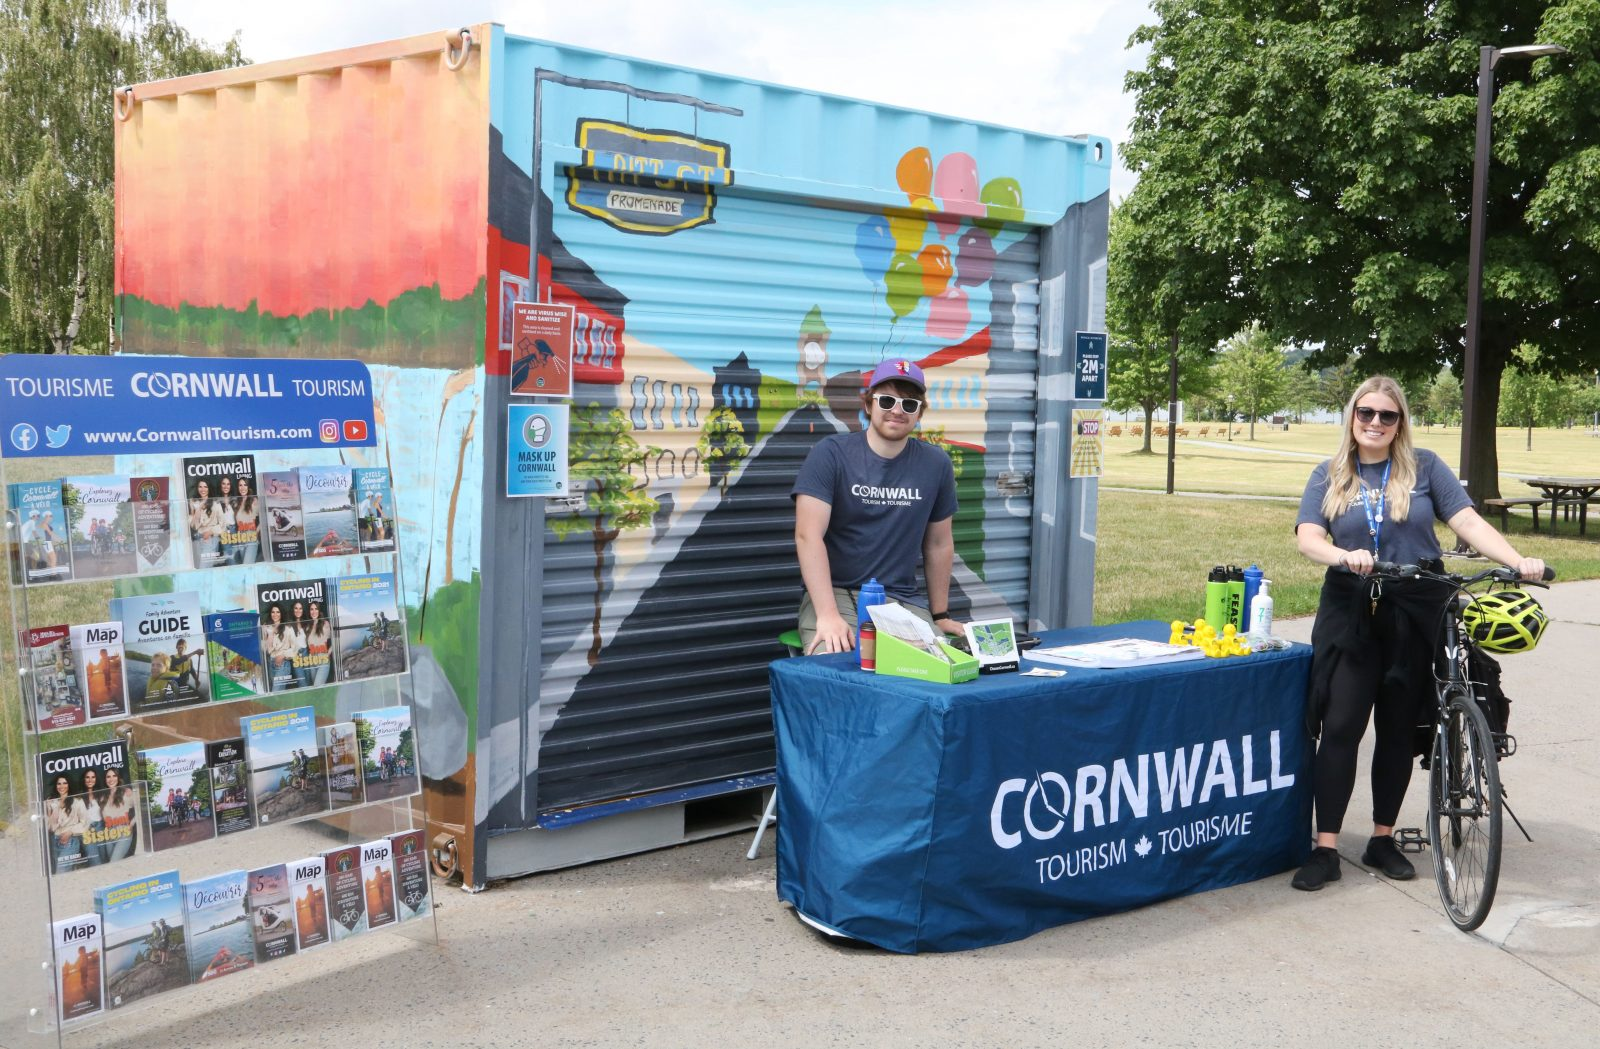 Cornwall Tourism launches pop-up, mobile visitor info services